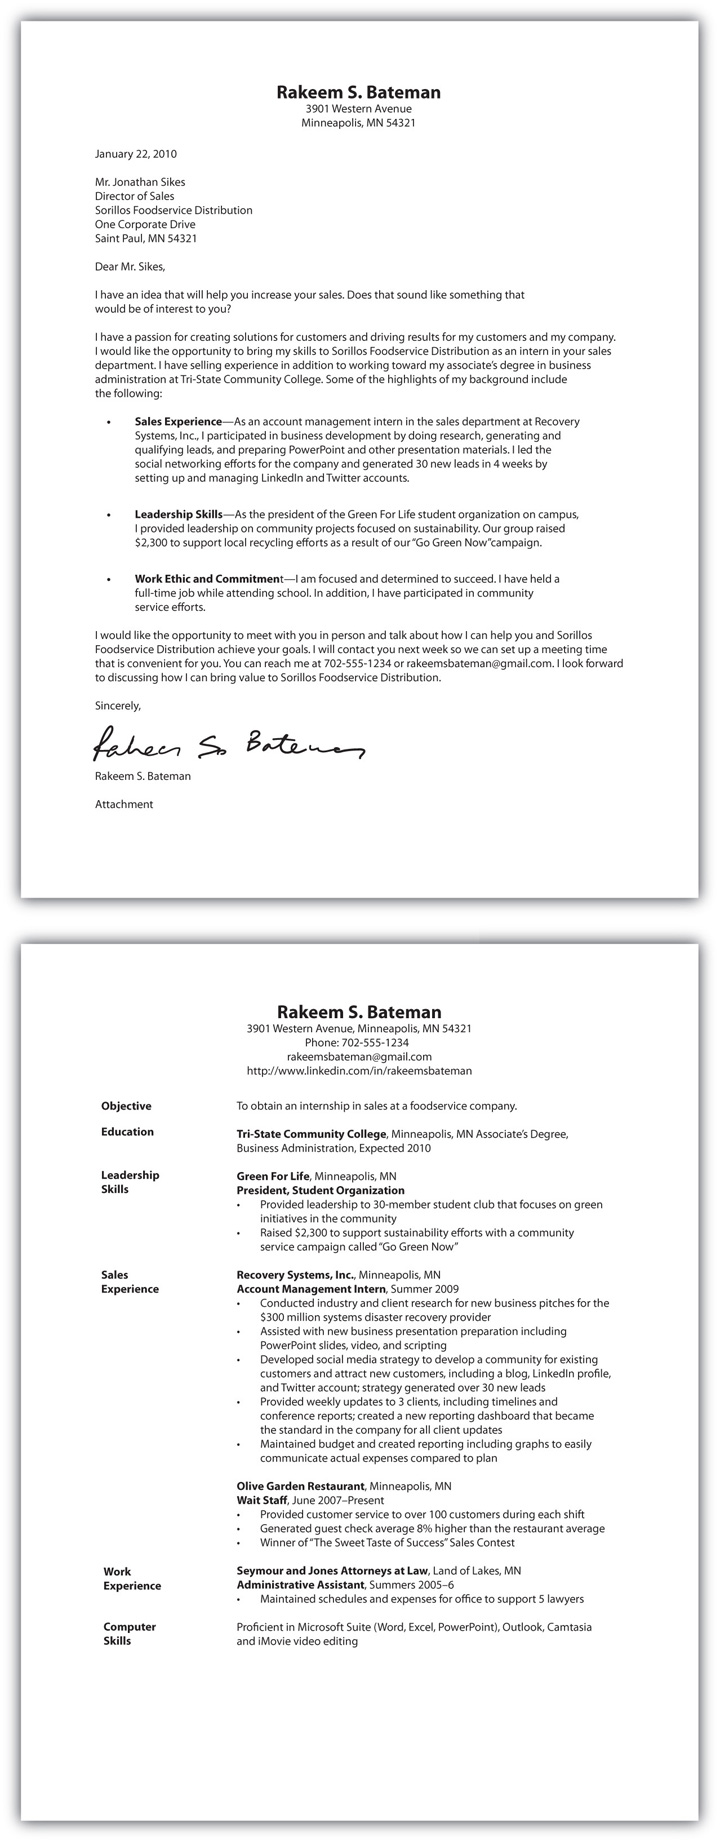 selling résumé and cover letter essentials resume service operations manager objective Resume Resume And Cover Letter Service